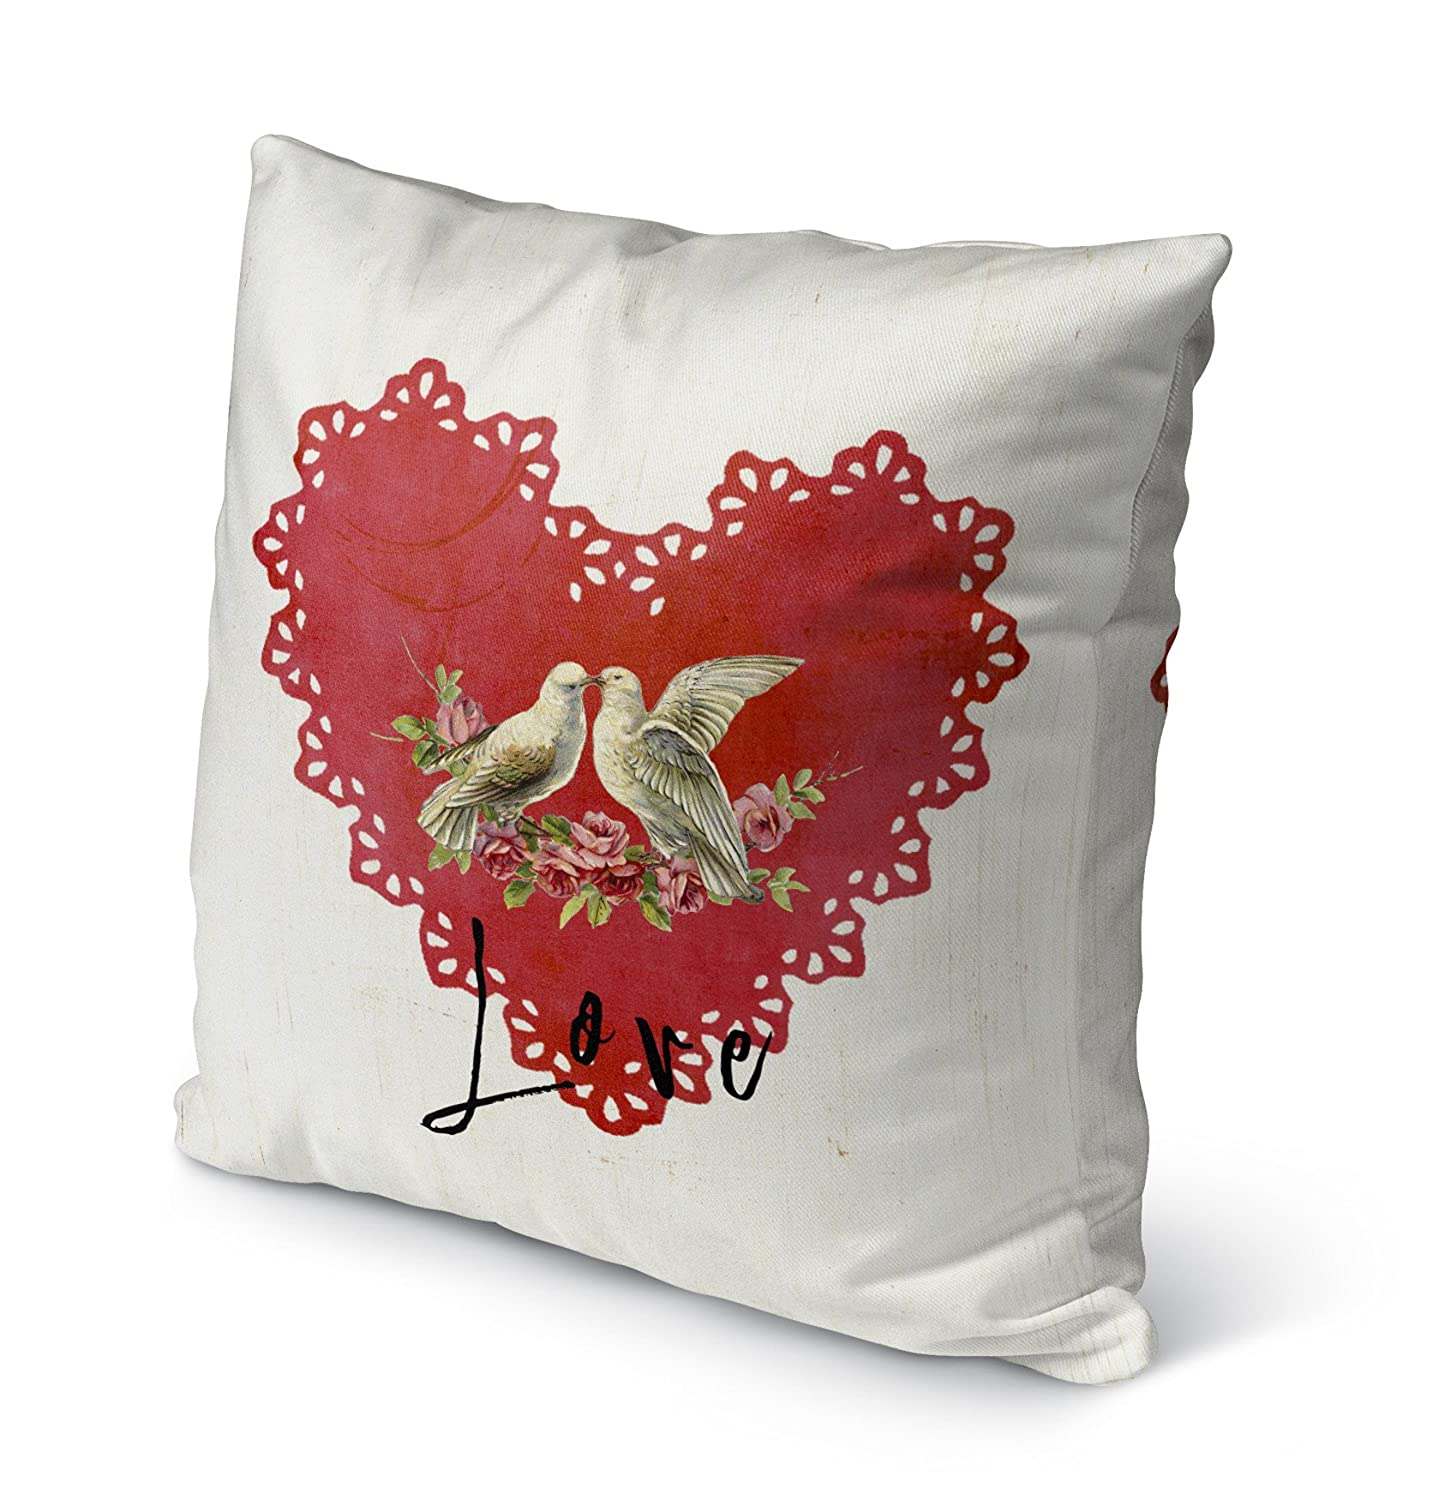 TELAVC8159OP18 KAVKA Designs Love Birds Indoor-Outdoor Pillow, Size: 18X18X6 - Red//Tan//Black - TRADITIONS Collection